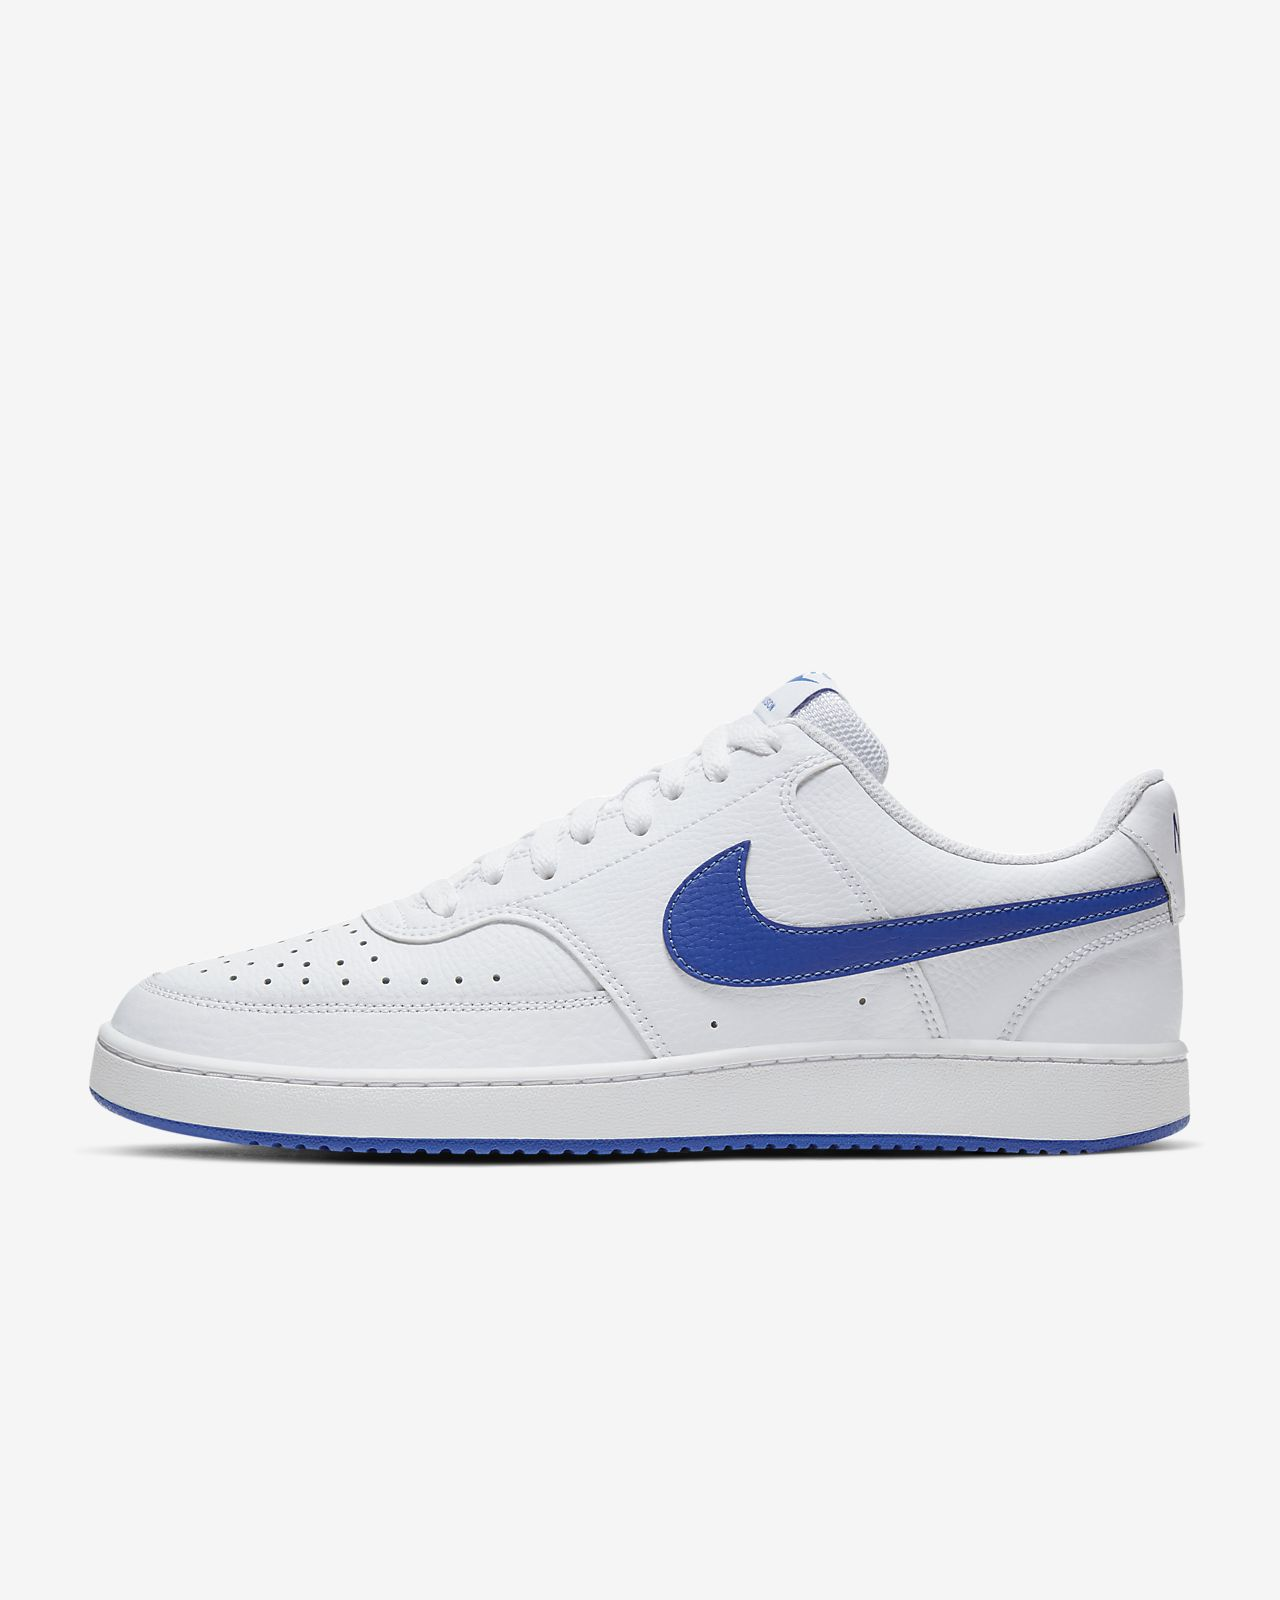 NikeCourt Vision Low Herenschoen